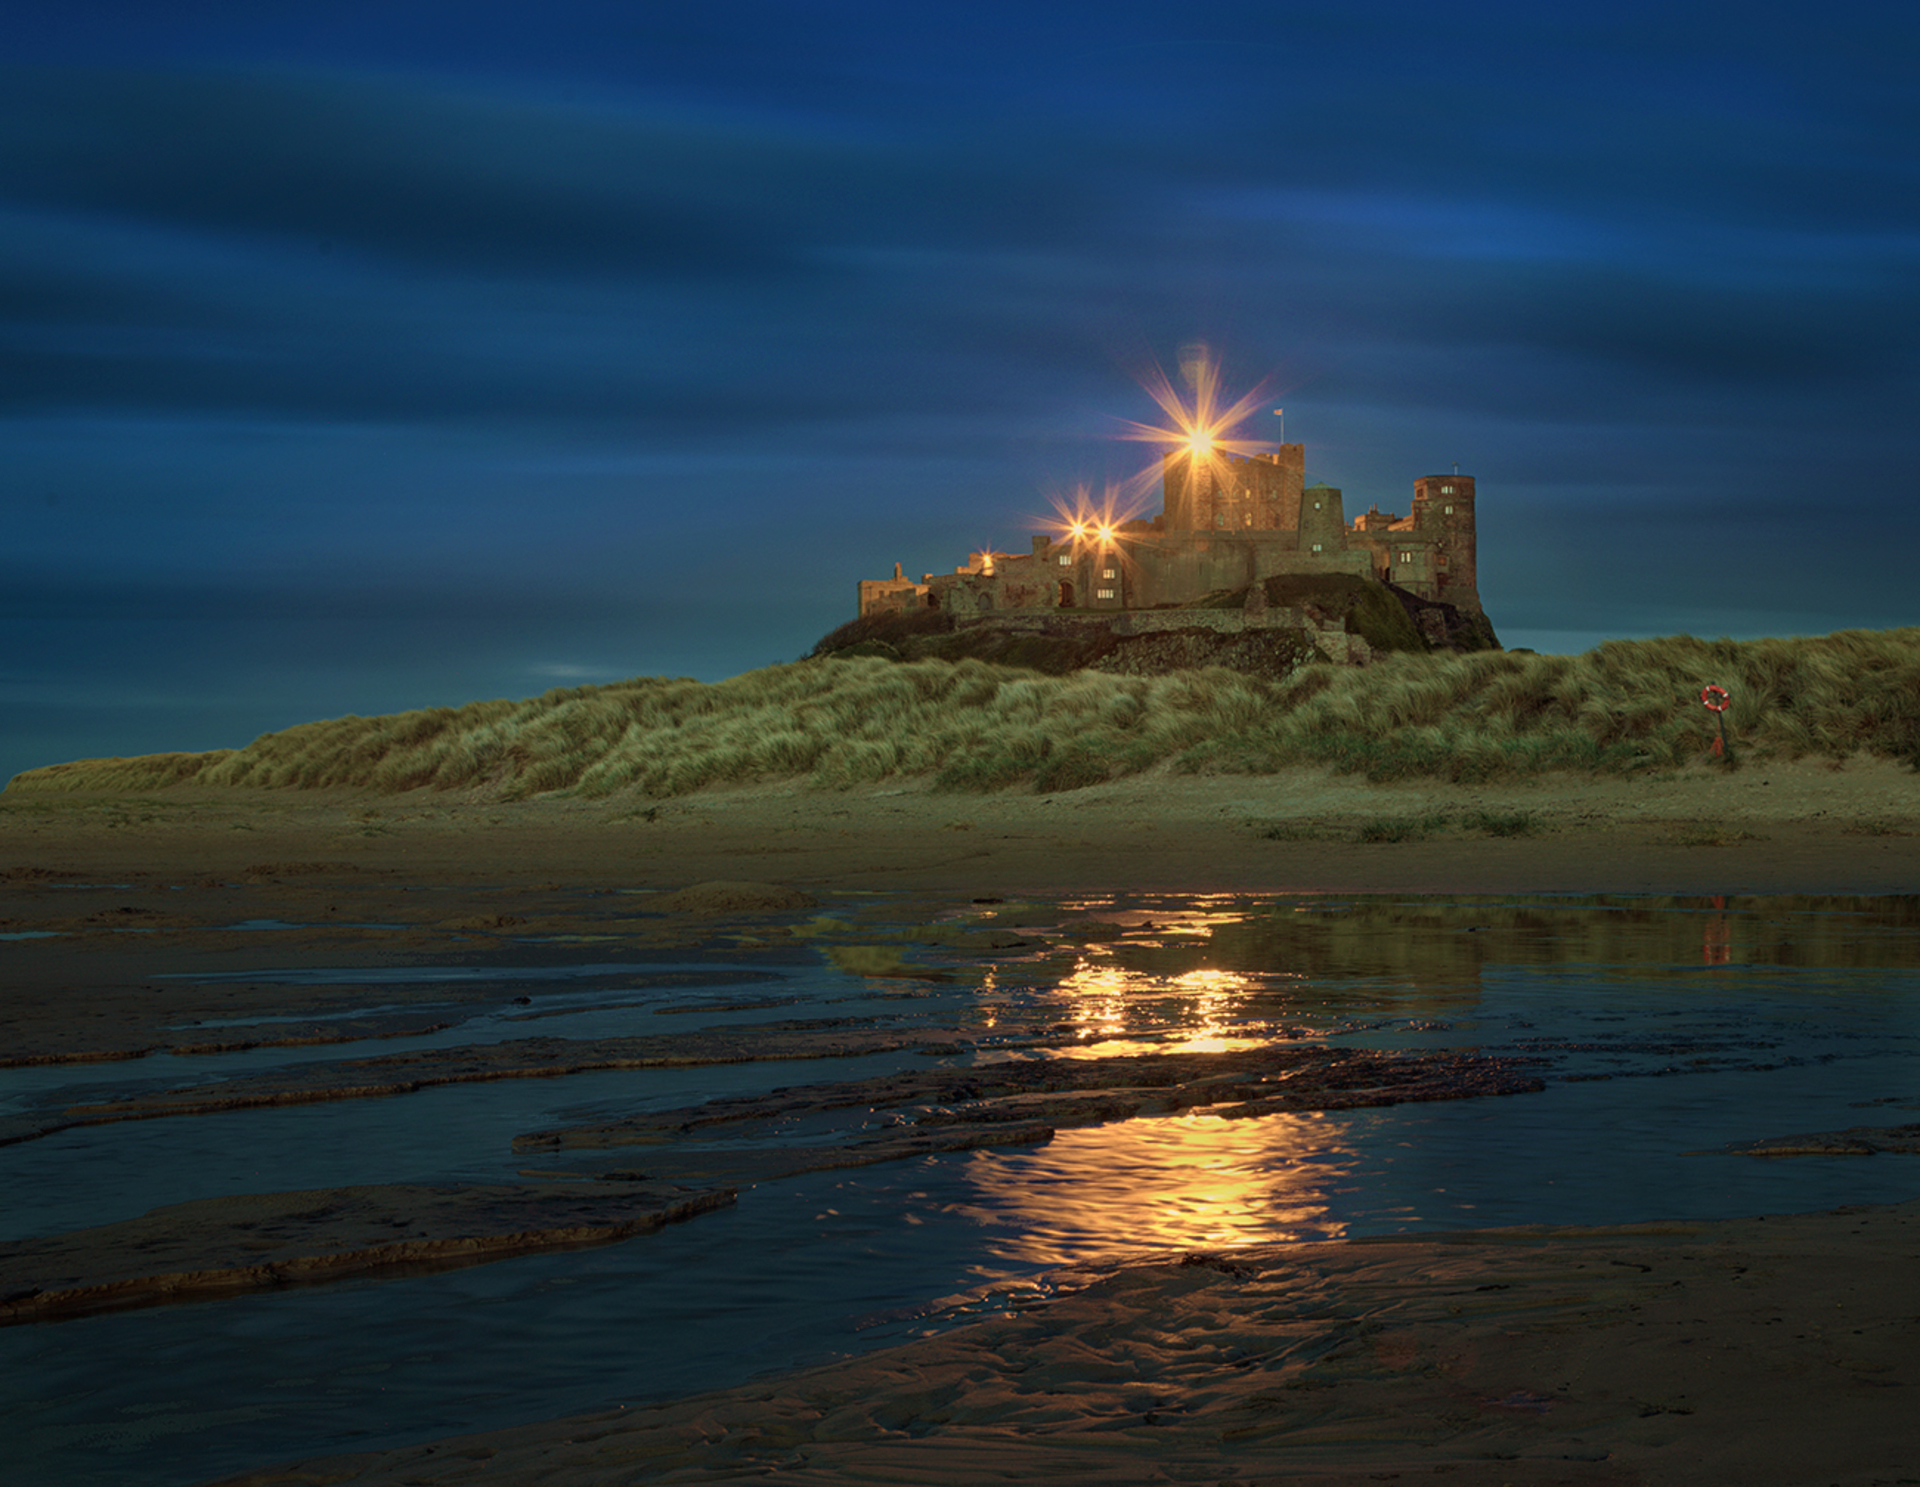 Bamburgh castle sunset. The sun sets on Northumberland's Bamburgh Castle